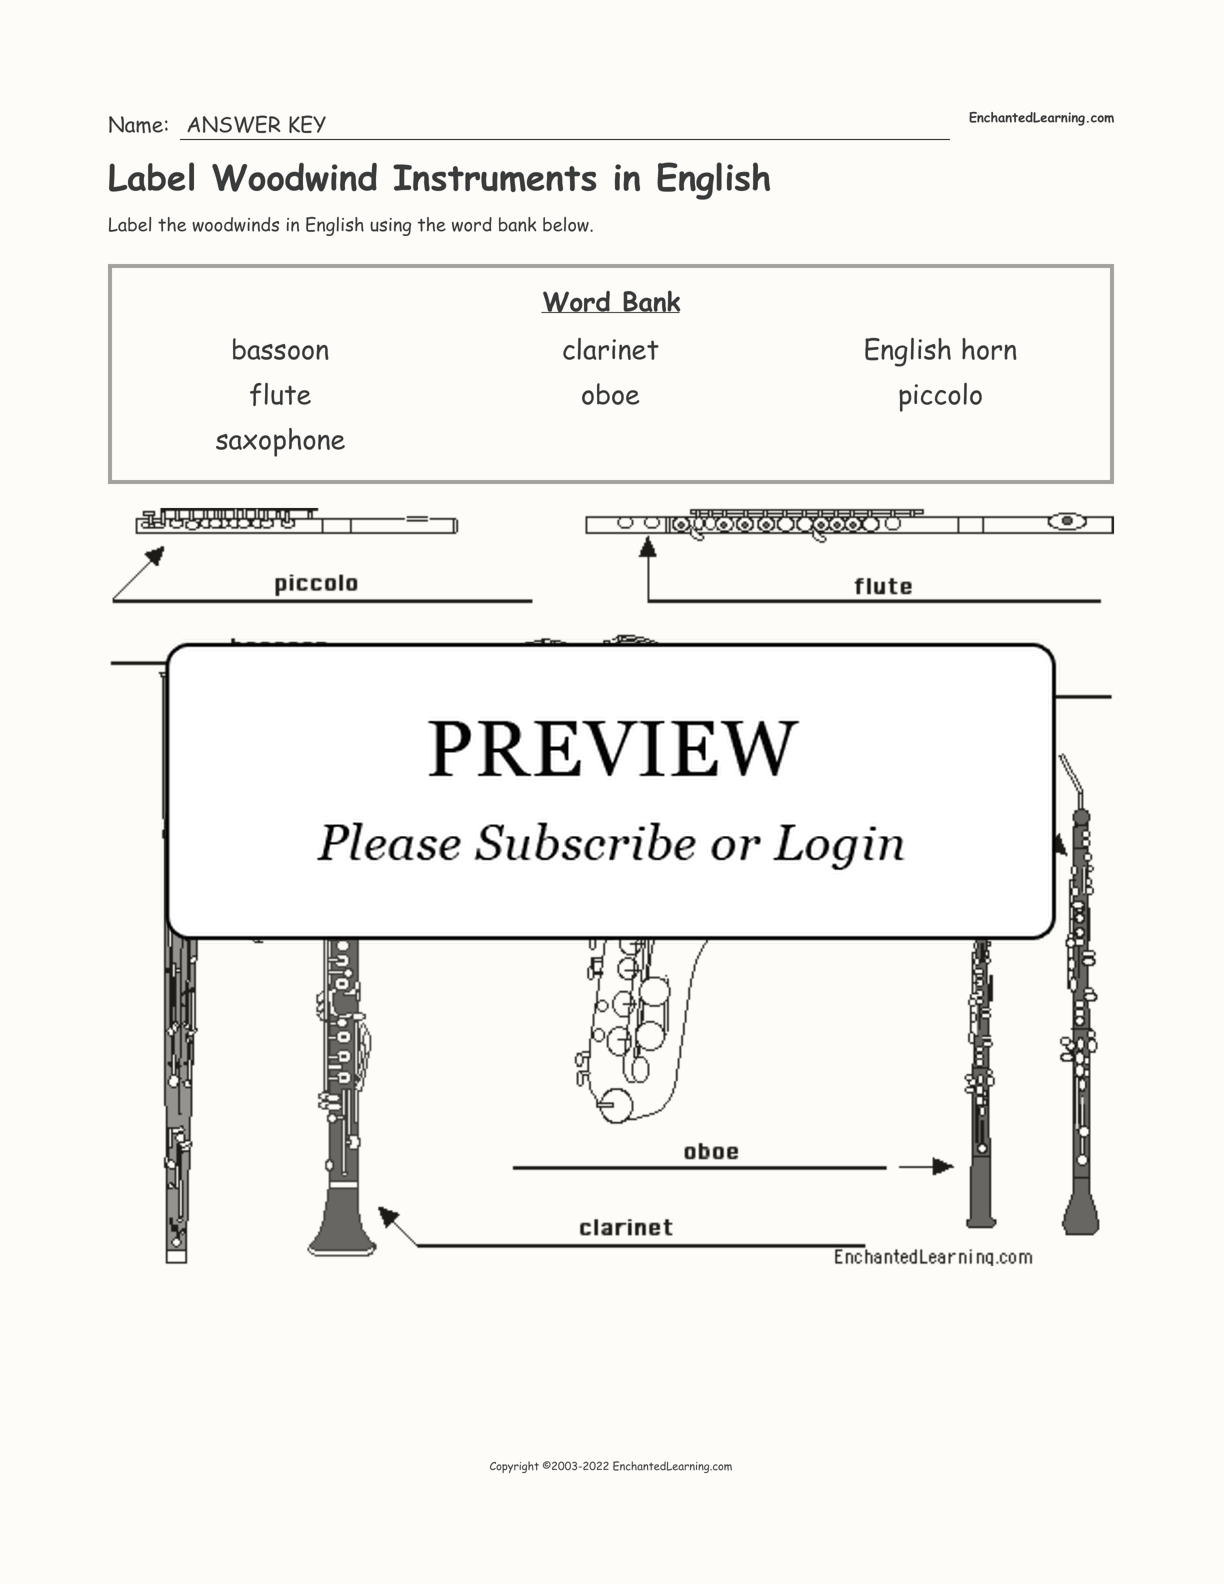 Label Woodwind Instruments in English interactive worksheet page 2